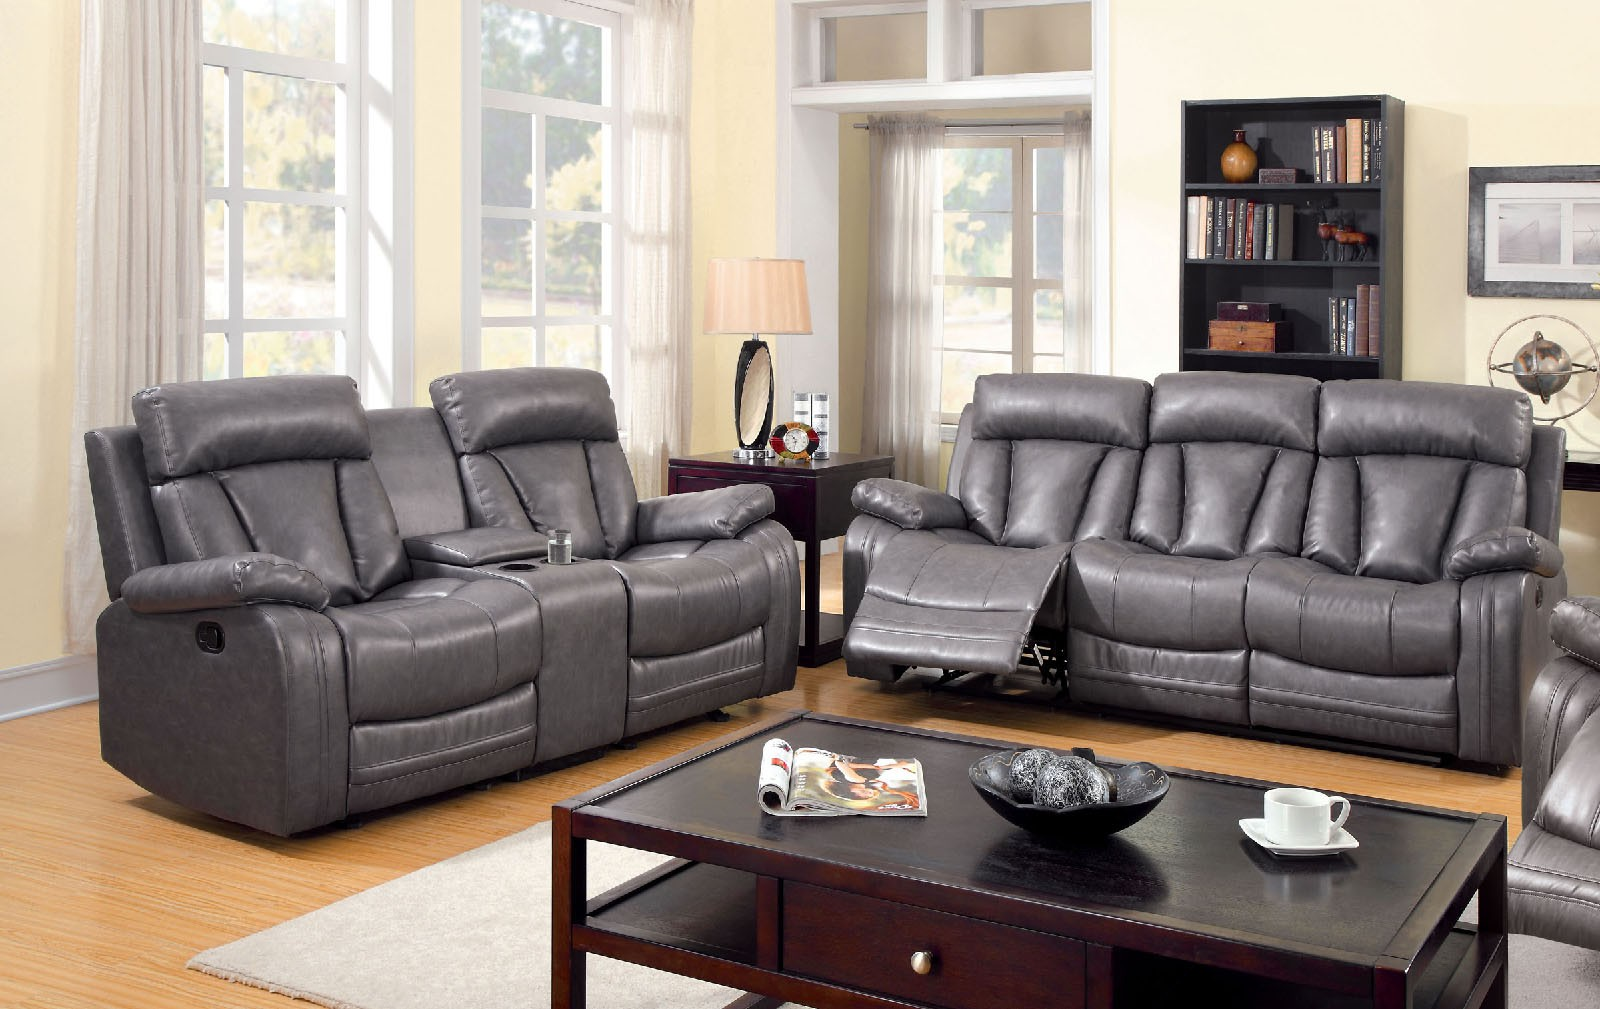 motion sofa set white and black sectional 3 pc loveseat recliner gray bonded